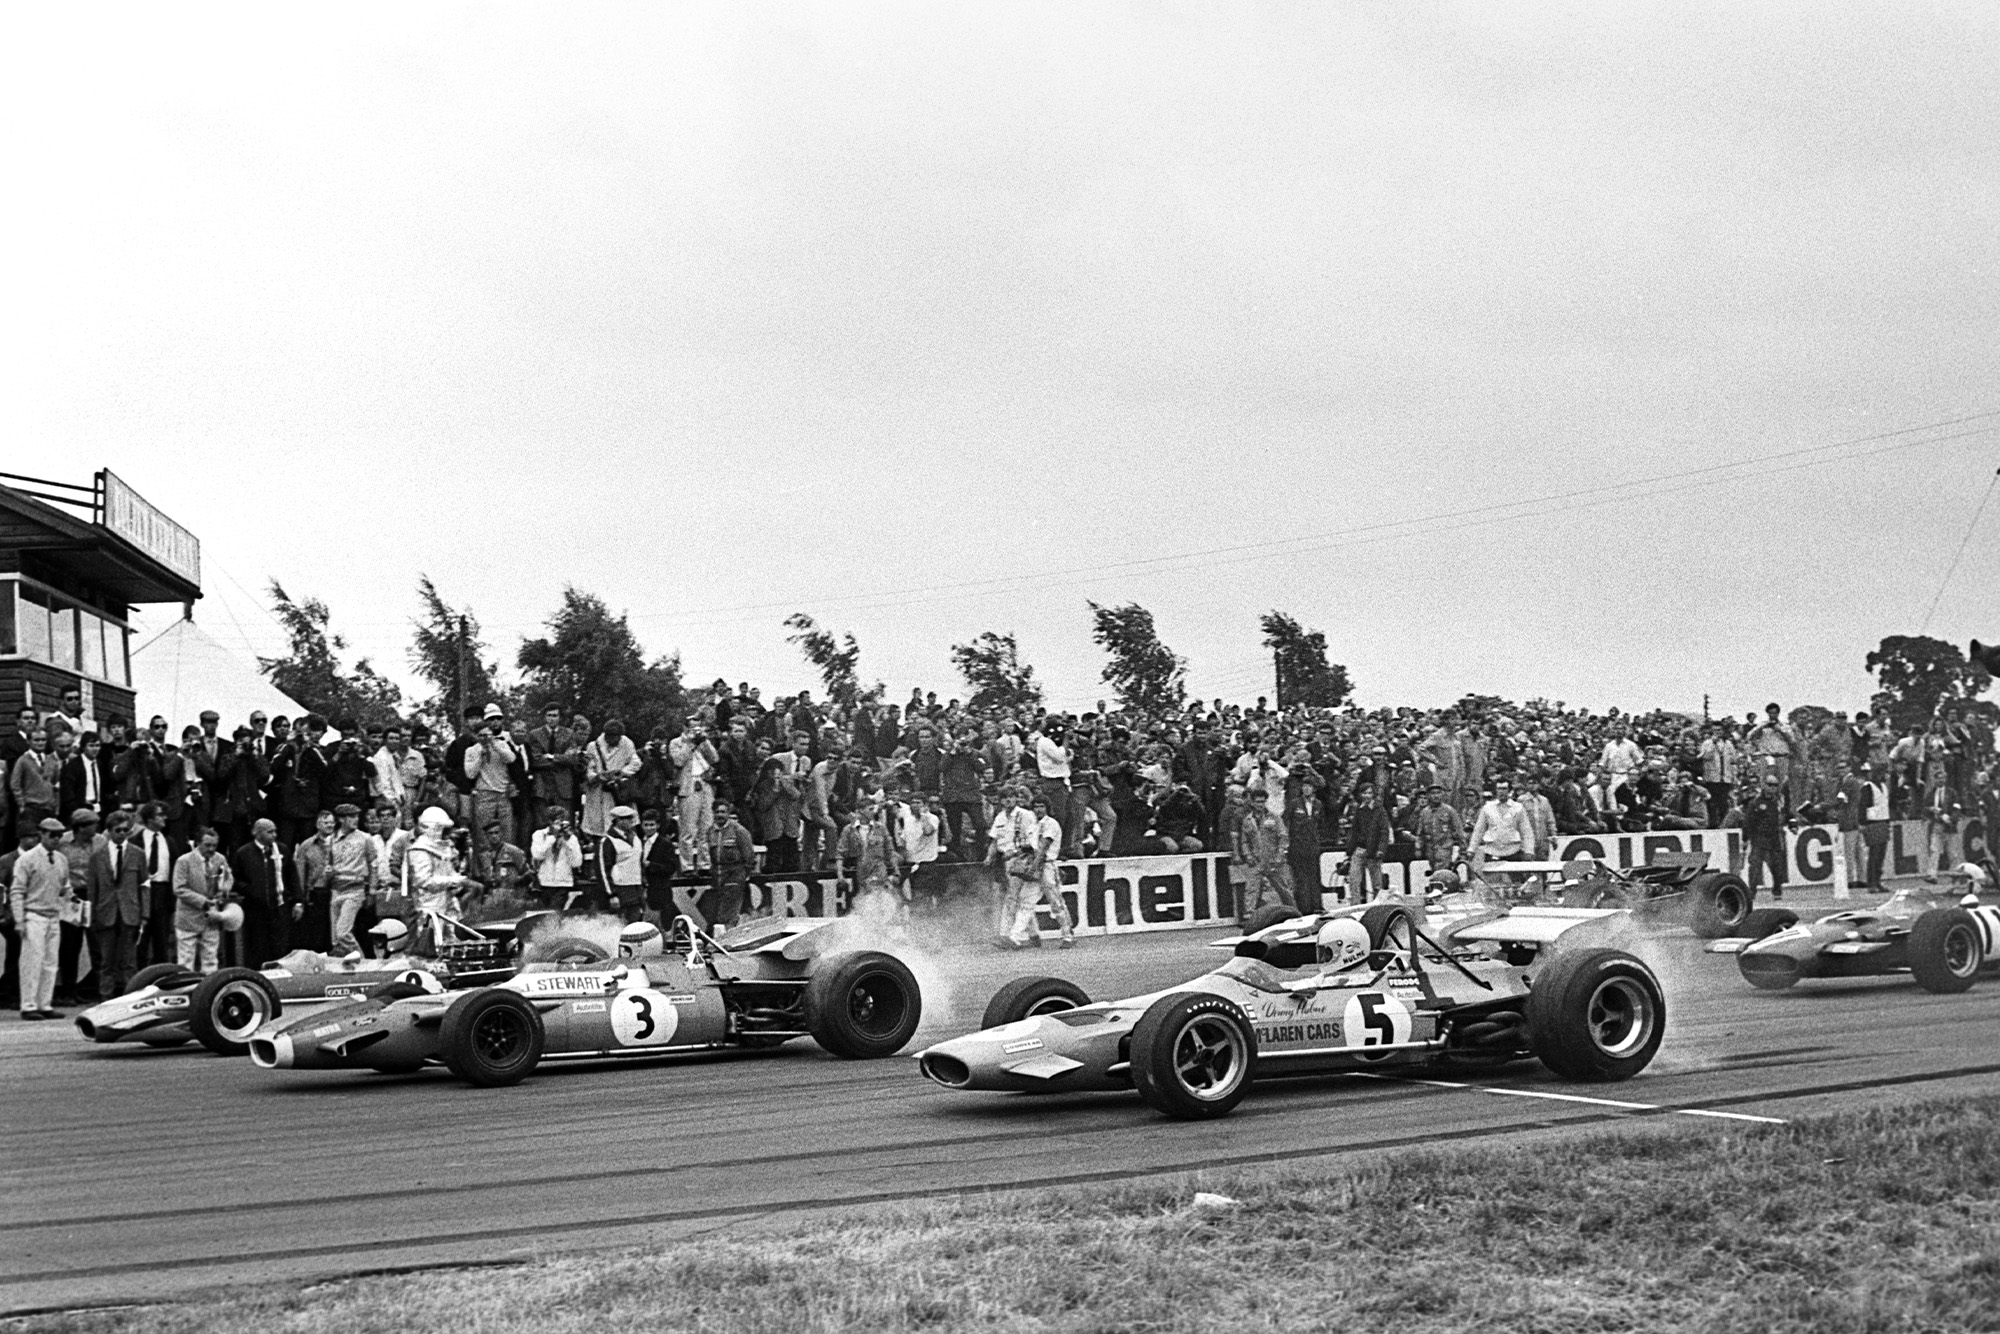 Jochen Rindt and Jackie Stewart lead in the 1969 British Grand Prix